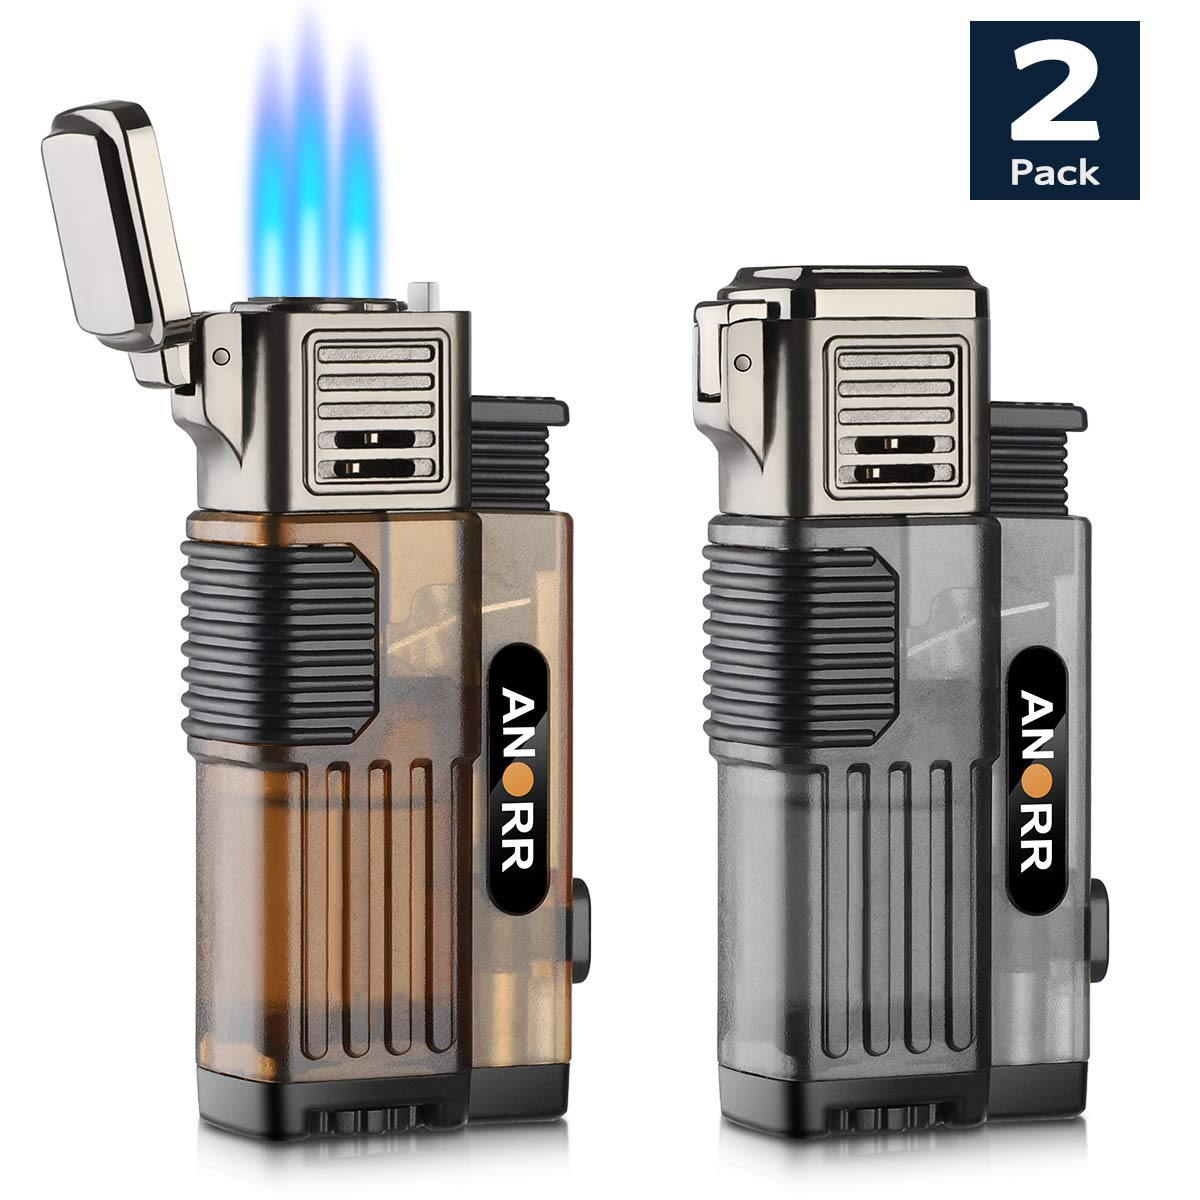 2 Pack Lighter Cigarette Adjustable Refillable